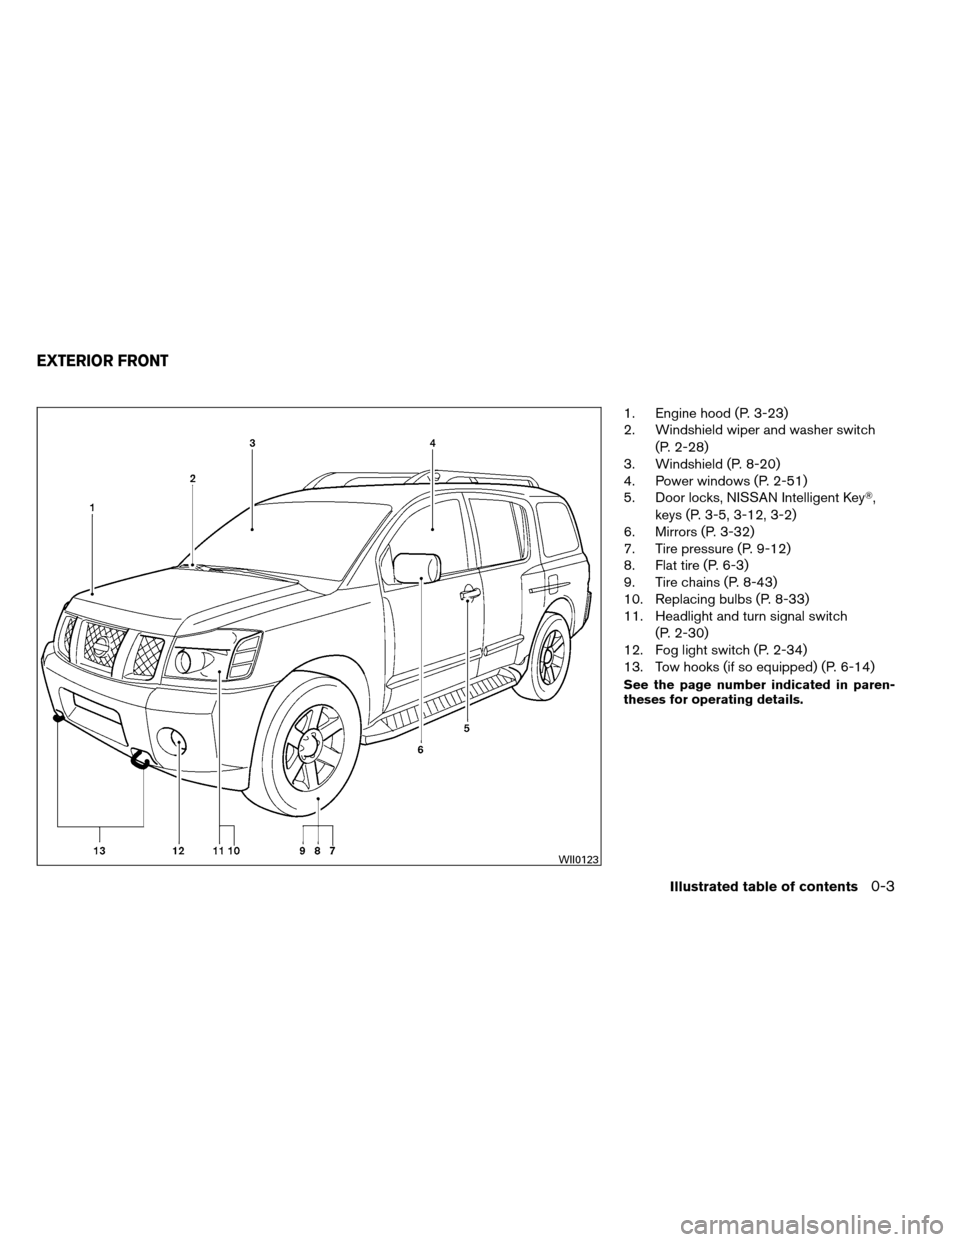 NISSAN ARMADA 2013 1.G Owners Manual 1. Engine hood (P. 3-23) 2. Windshield wiper and washer switch(P. 2-28) 3. Windshield (P. 8-20) 4. Power windows (P. 2-51) 5. Door locks, NISSAN Intelligent Key, keys (P. 3-5, 3-12, 3-2) 6. Mirrors (